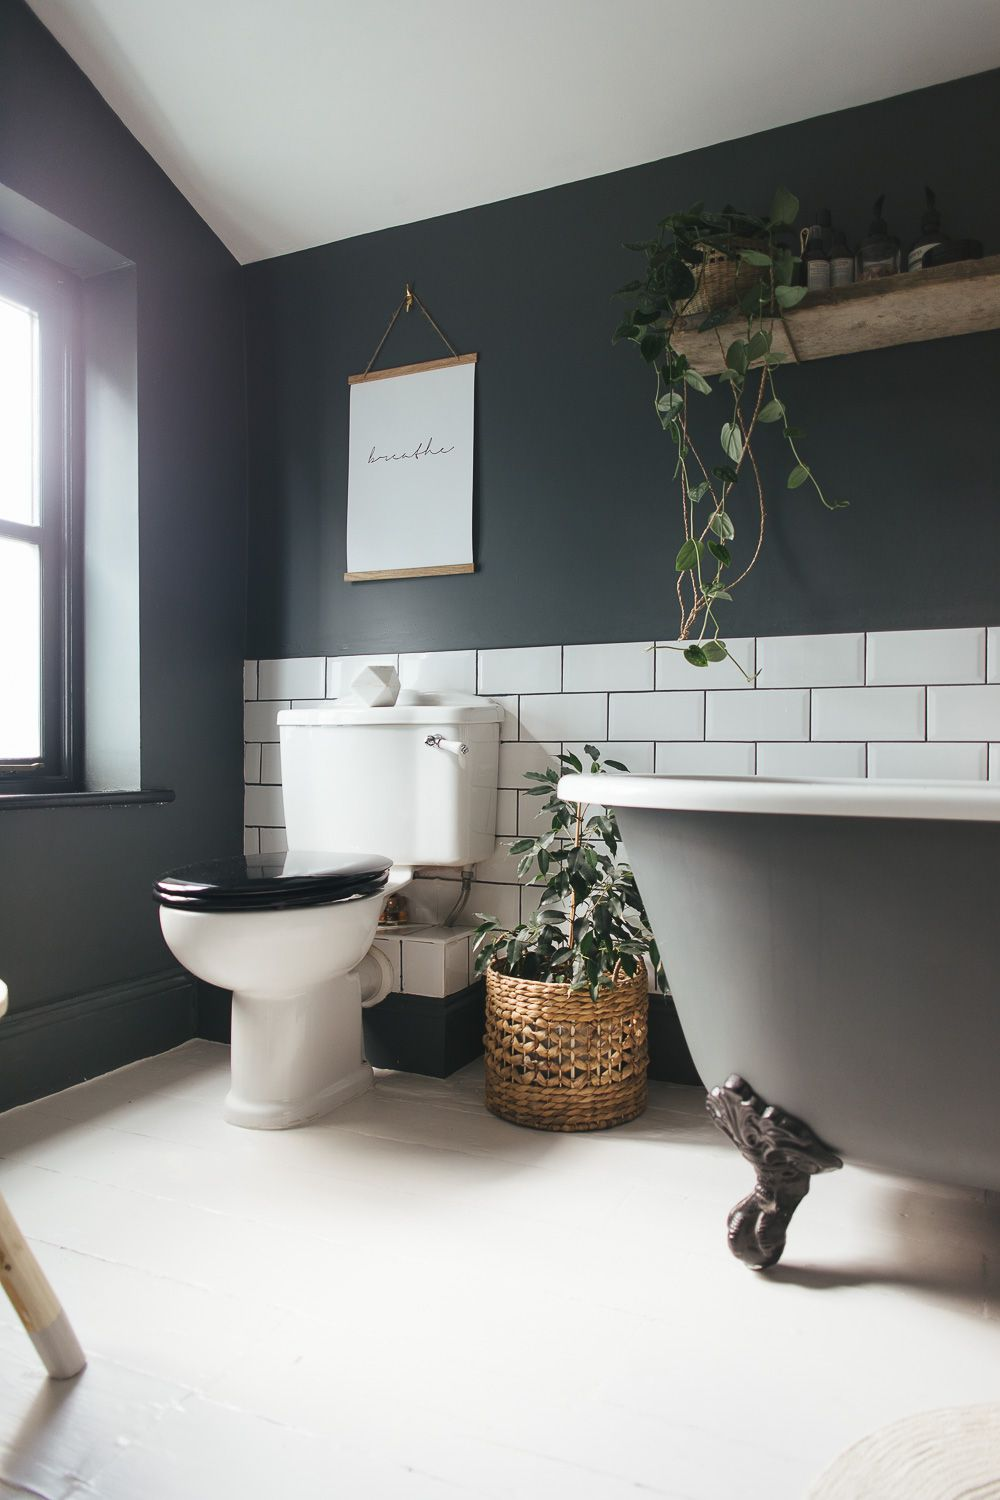 Best Paint Colors For Small Dark Bathroom